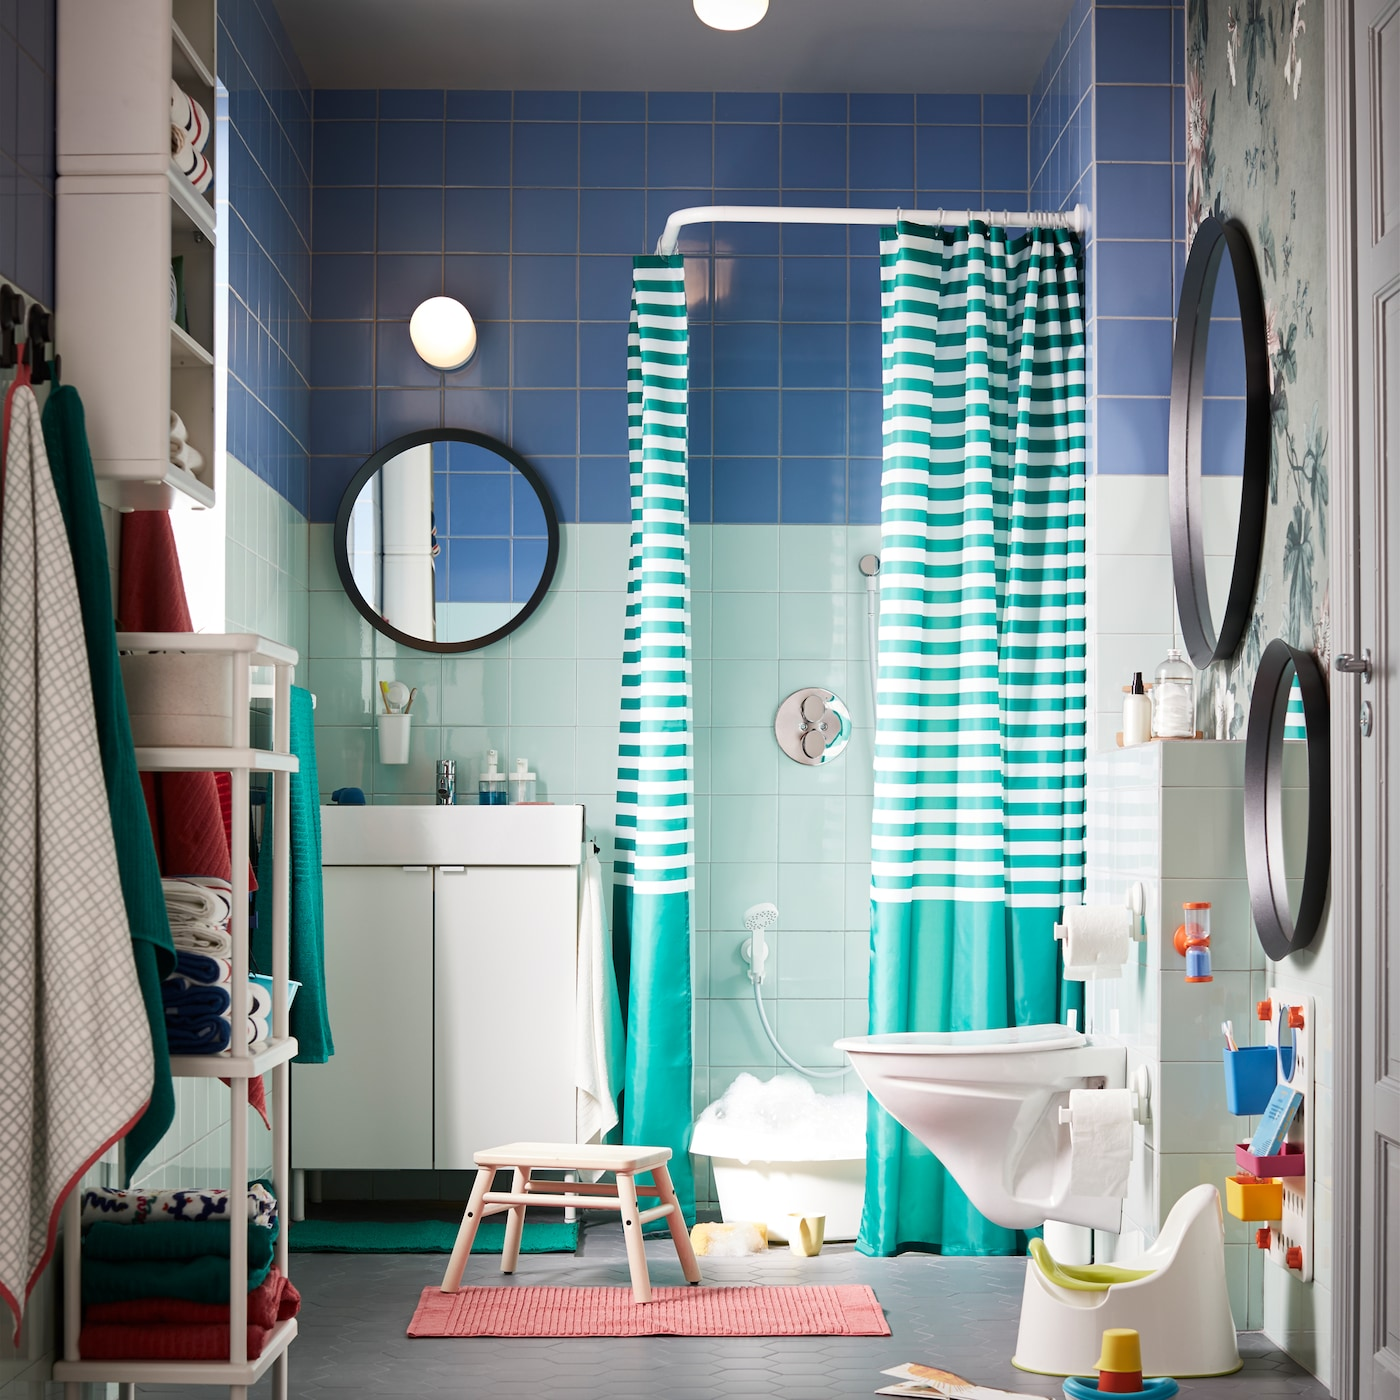 A green/blue bathroom with colourful and white interior and lots of rearrangeable storage for grown-ups and small children.